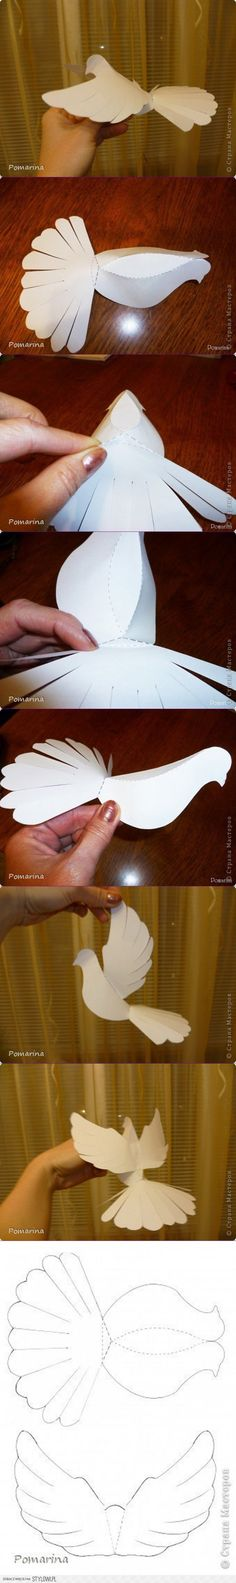 Here is a tutorial for making your own DIY flying dove. You only need some paper and scissors. Templates of the bird parts are given above. Simply cut through the edges of the templates and attach … Origami Paper, Diy Paper, Paper Art, Paper Crafts, Diy And Crafts, Crafts For Kids, Arts And Crafts, Paper Birds, Paper Flowers